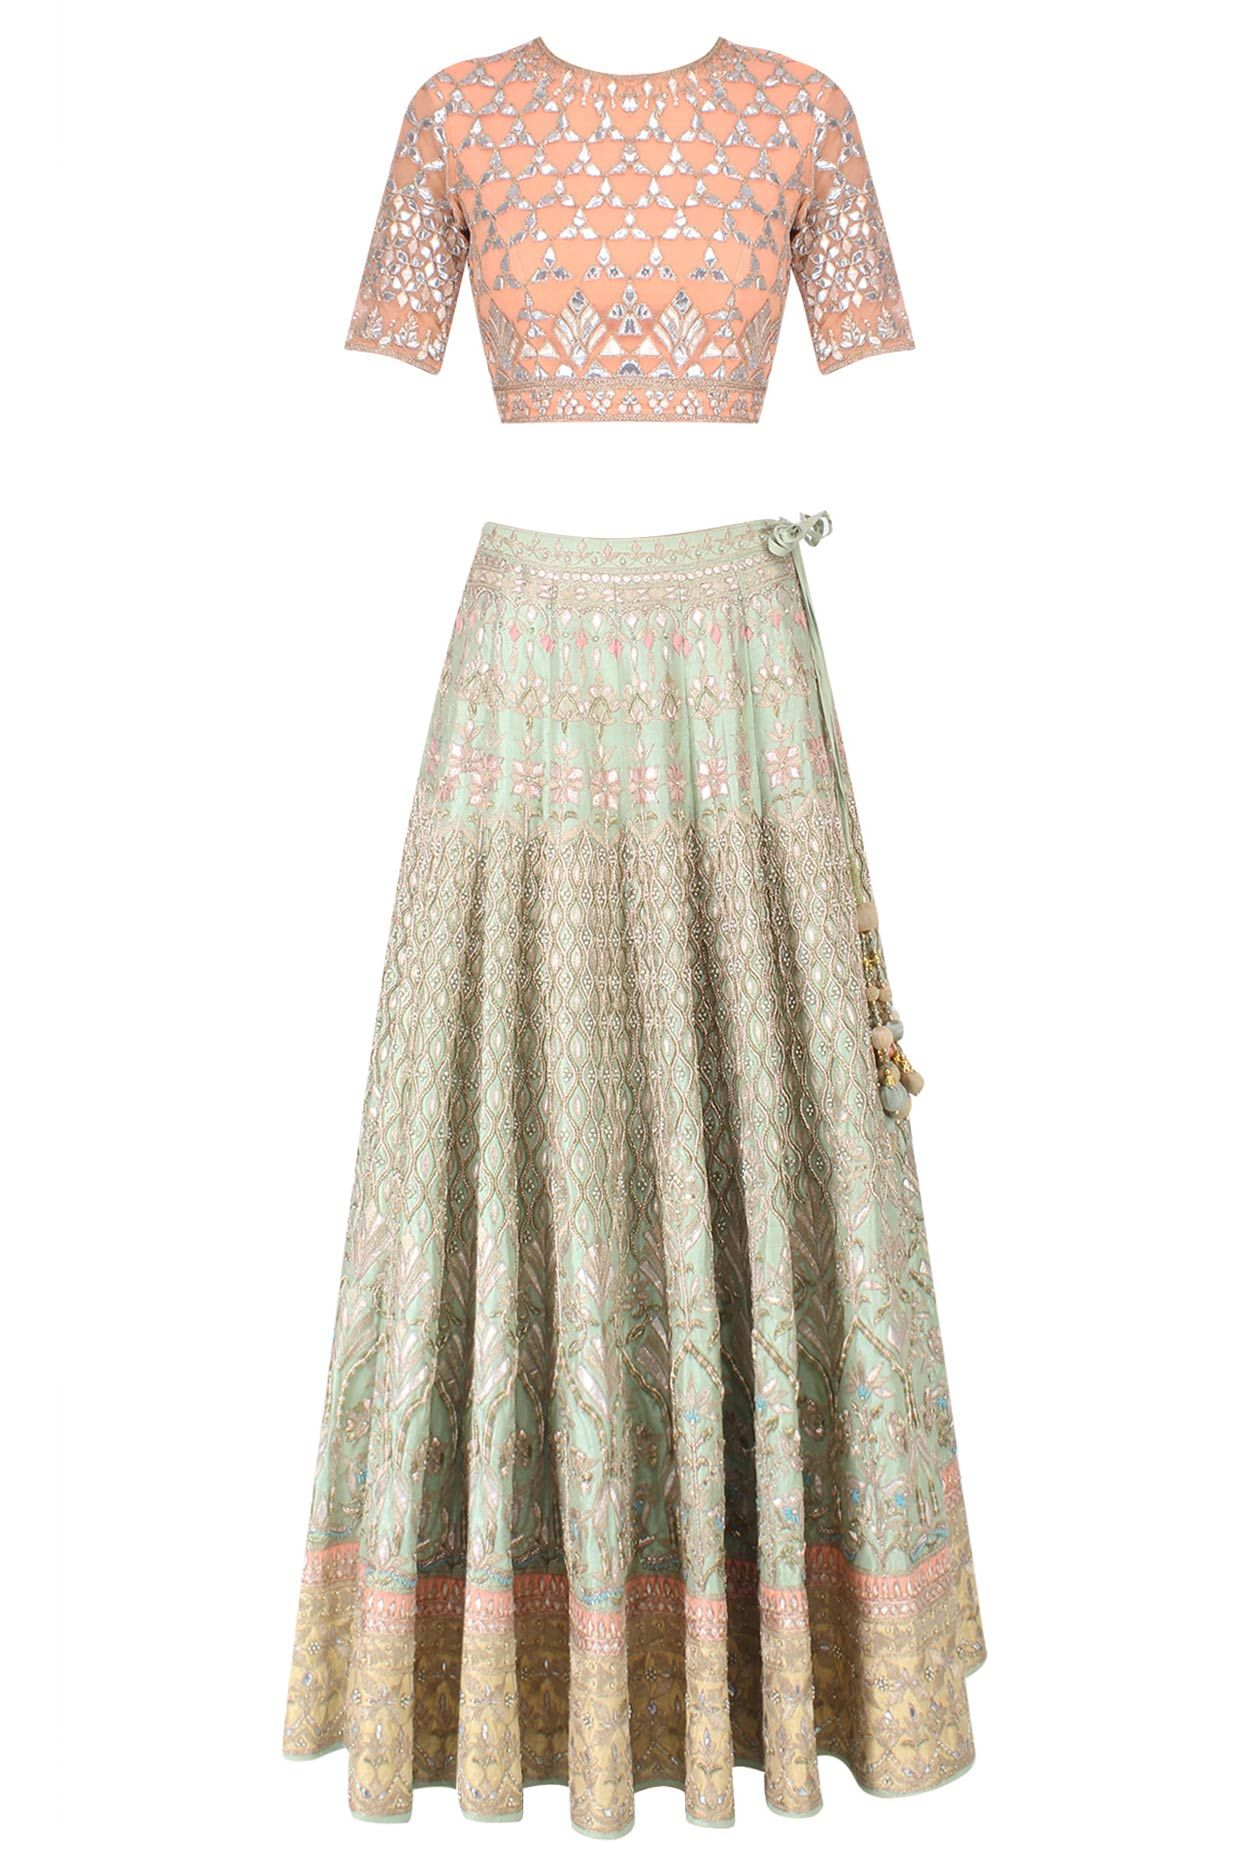 Sage green and peach kali shaped embroidered lehenga set